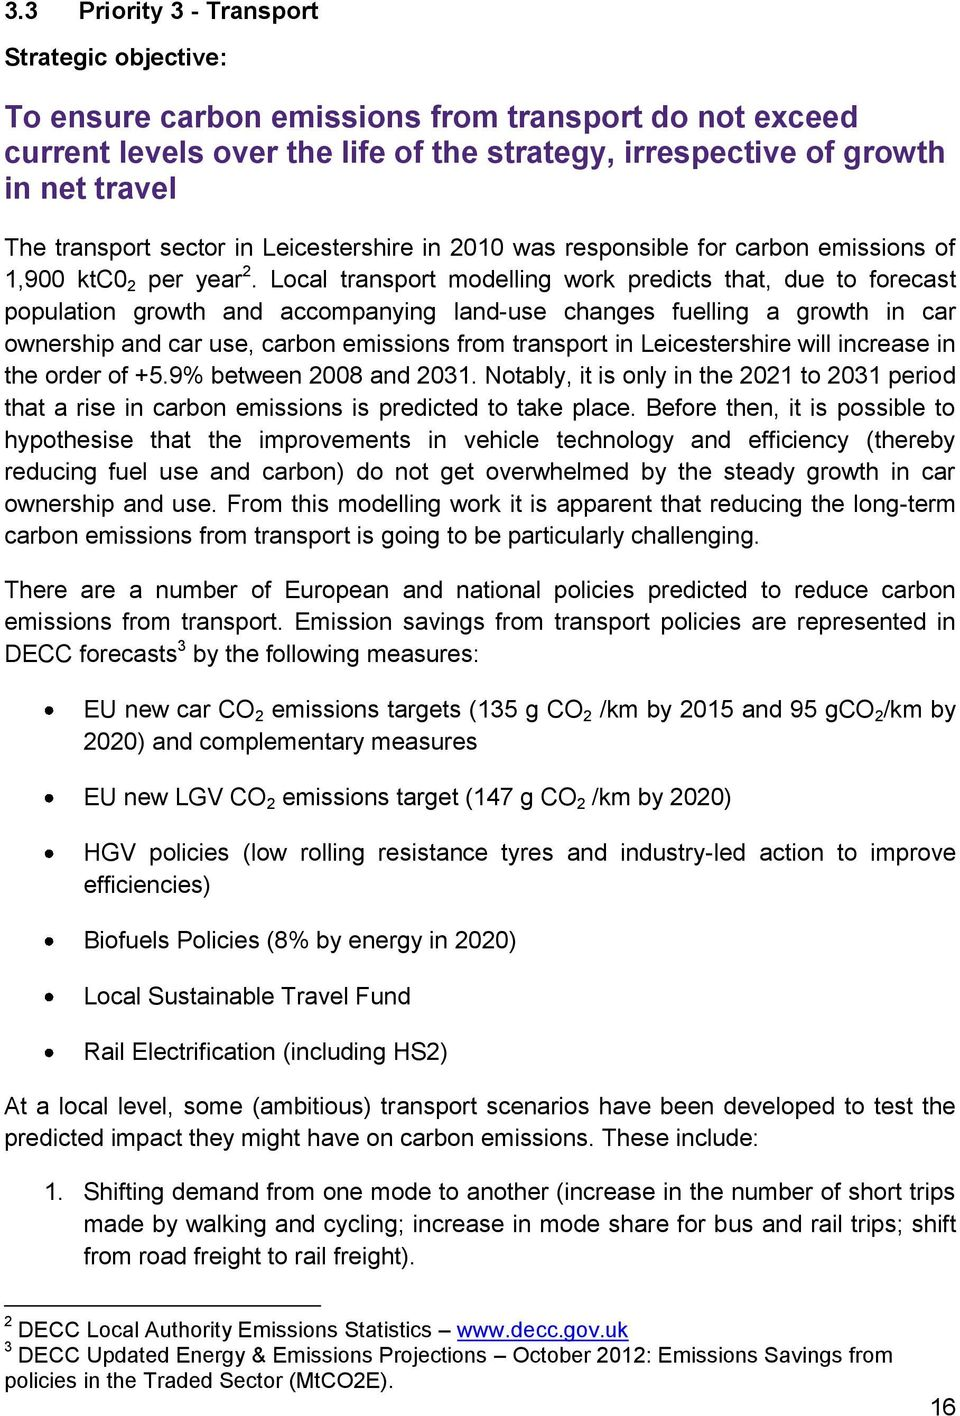 Local transport modelling work predicts that, due to forecast population growth and accompanying land-use changes fuelling a growth in car ownership and car use, carbon emissions from transport in